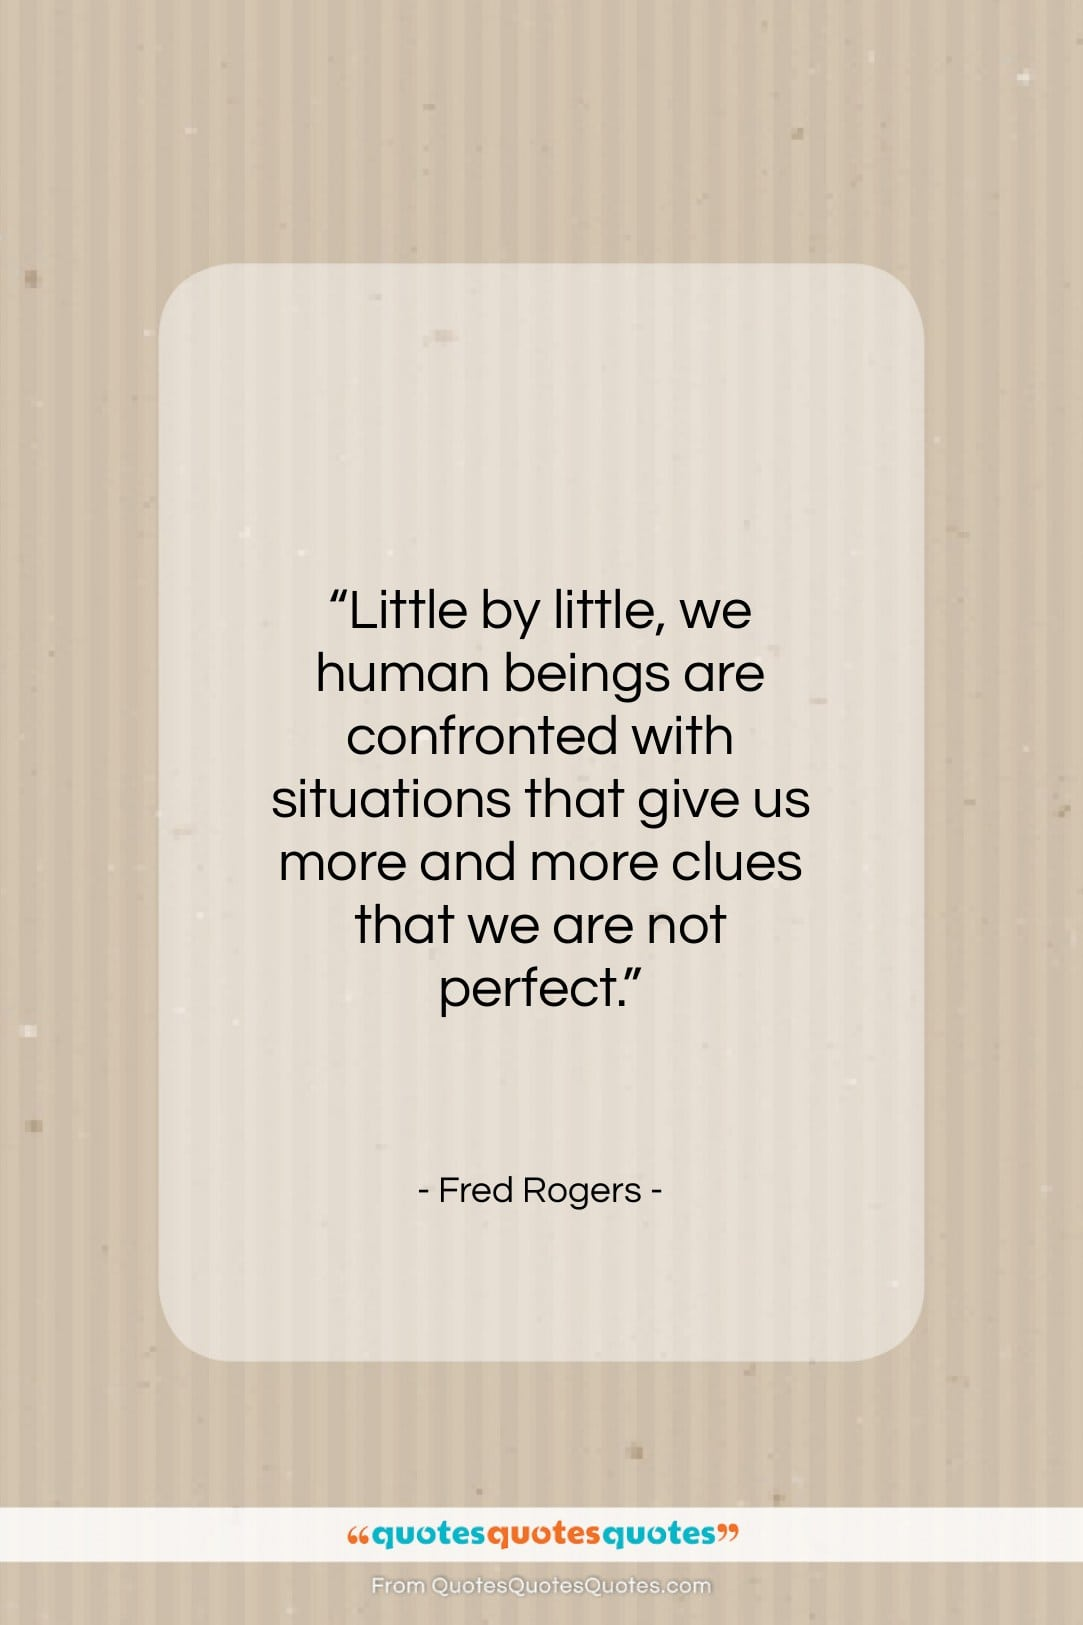 Get The Whole Fred Rogers Quote Little By Little We Human Beings